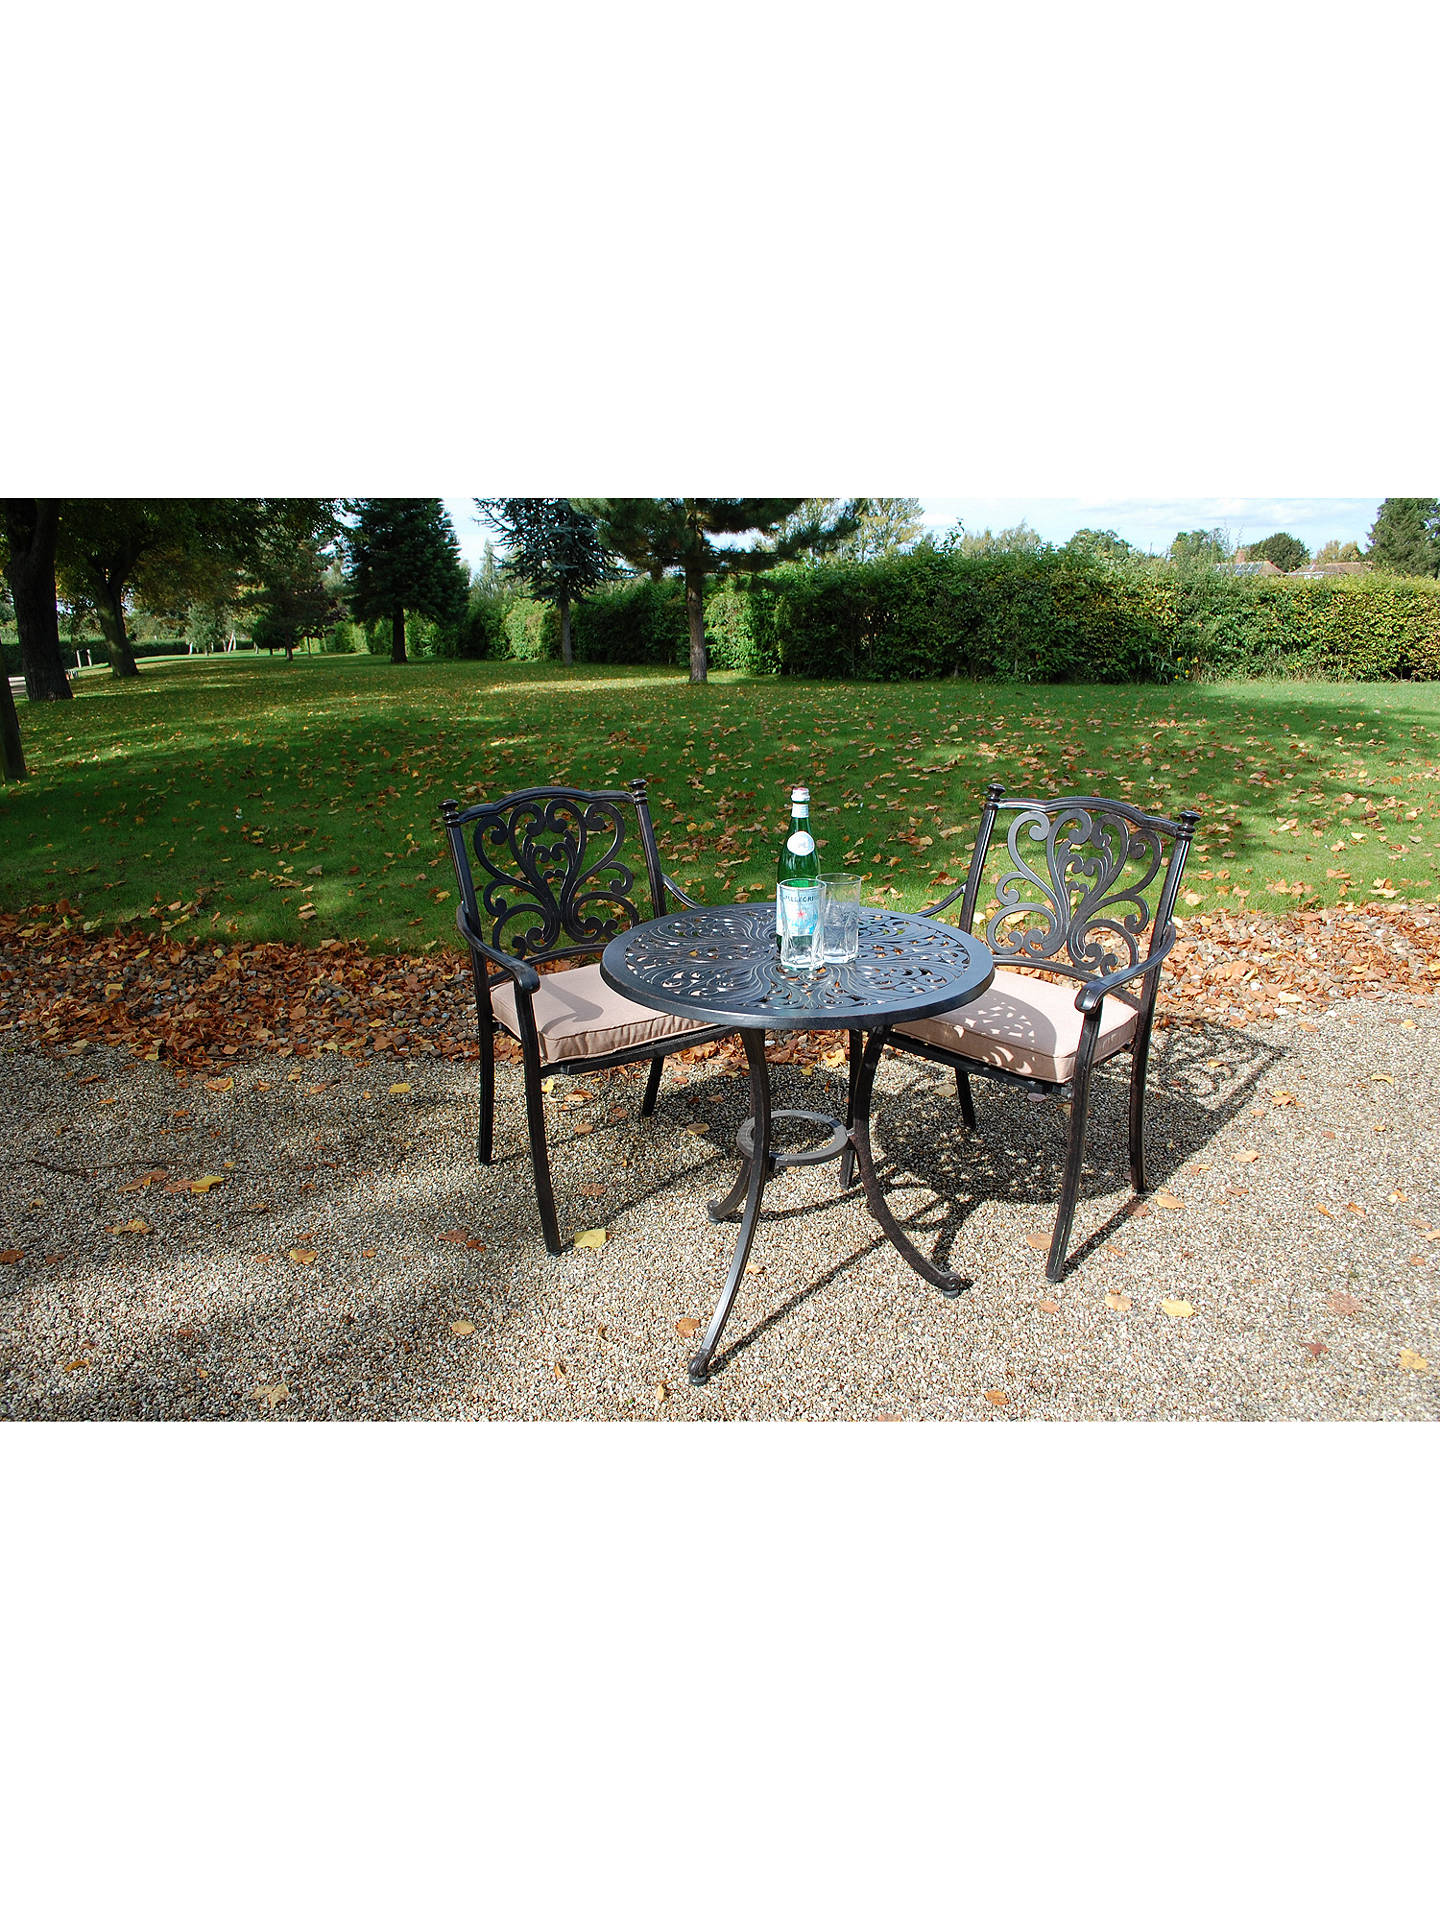 dddc18fa52df ... Buy LG Outdoor Devon 2 Seater Garden Bistro Table and Chairs Set,  Bronze Online at ...